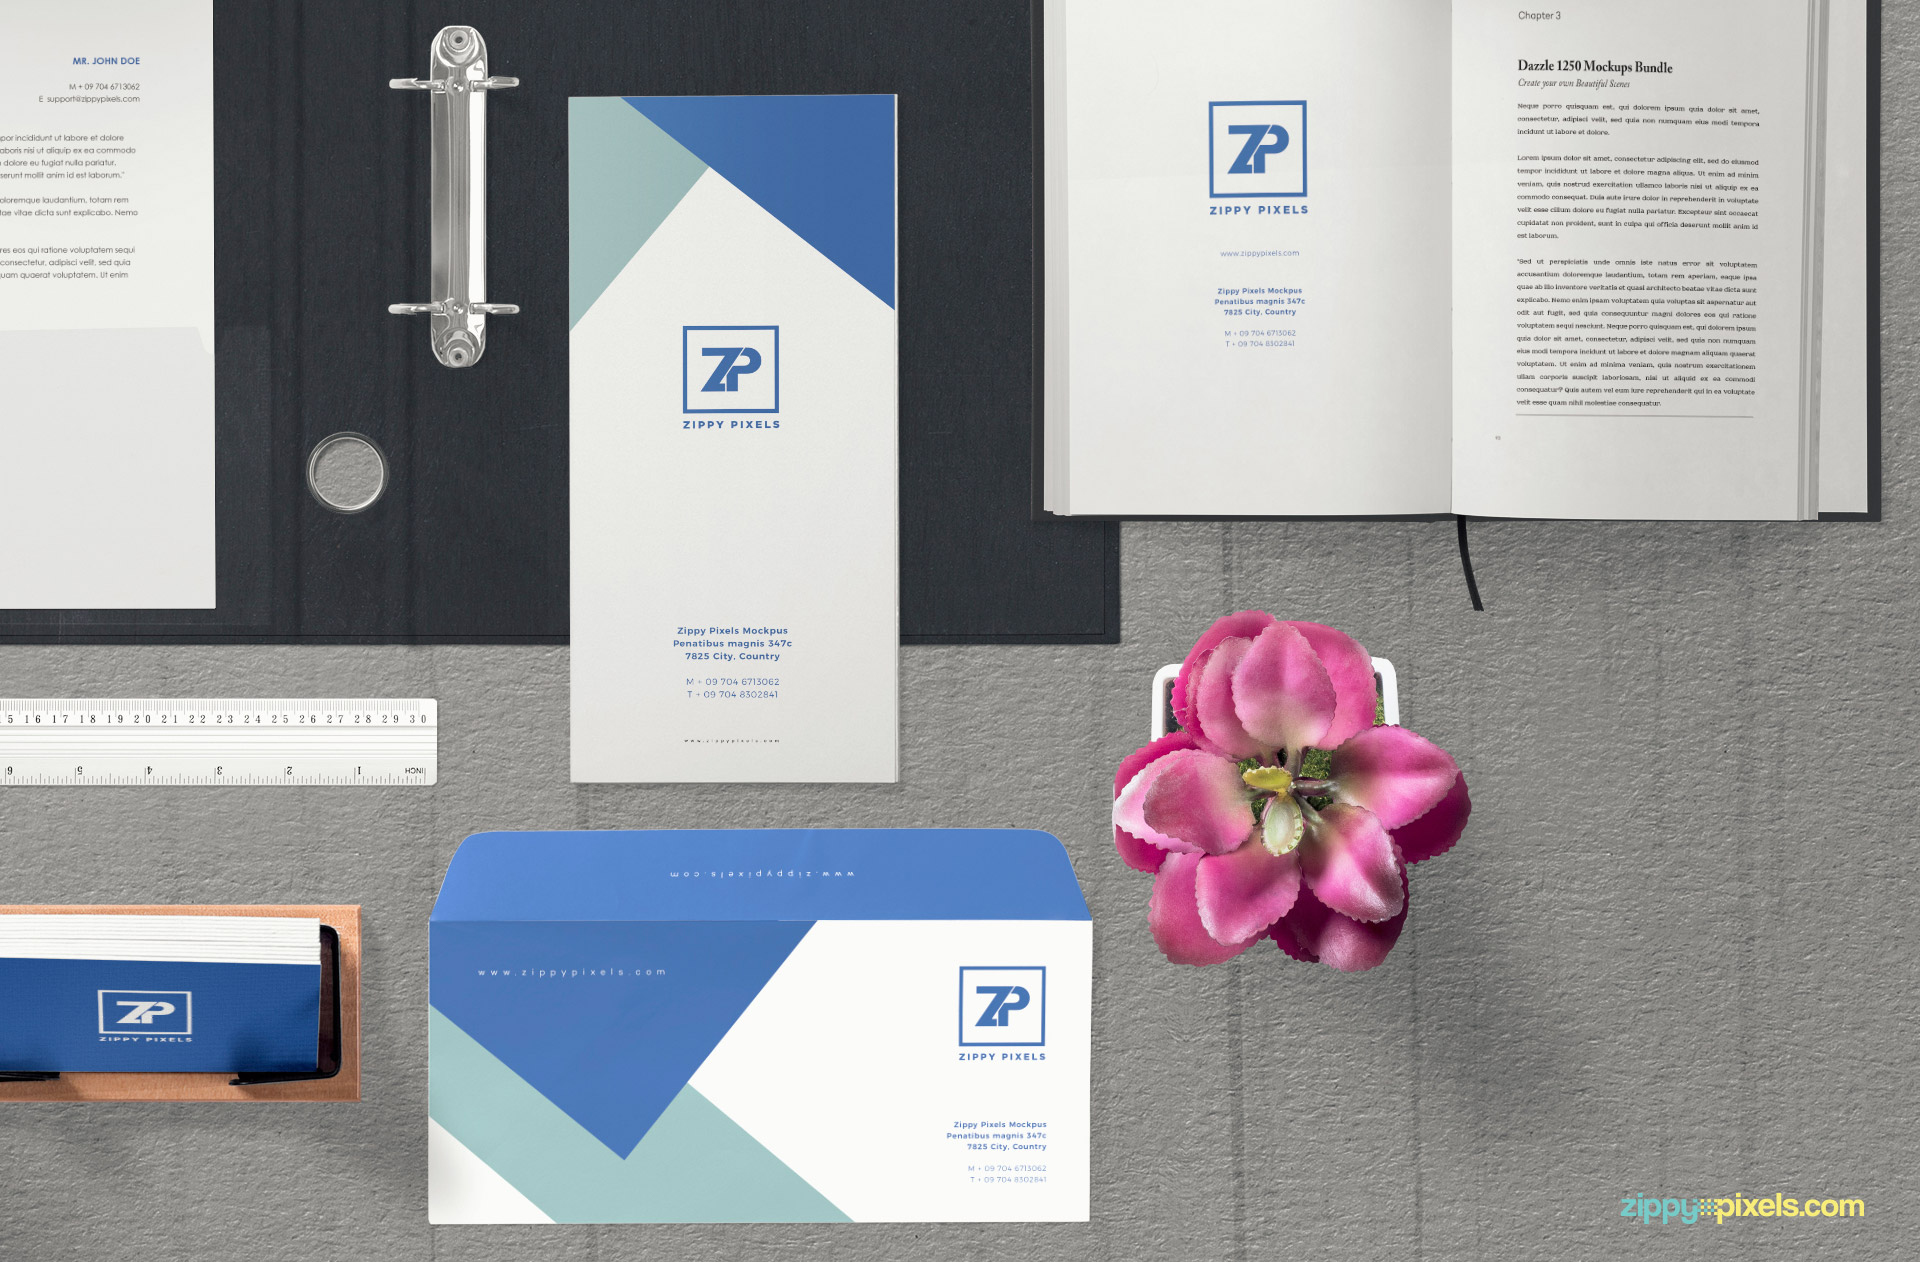 You can edit all of the office stationery items in this free mockup.